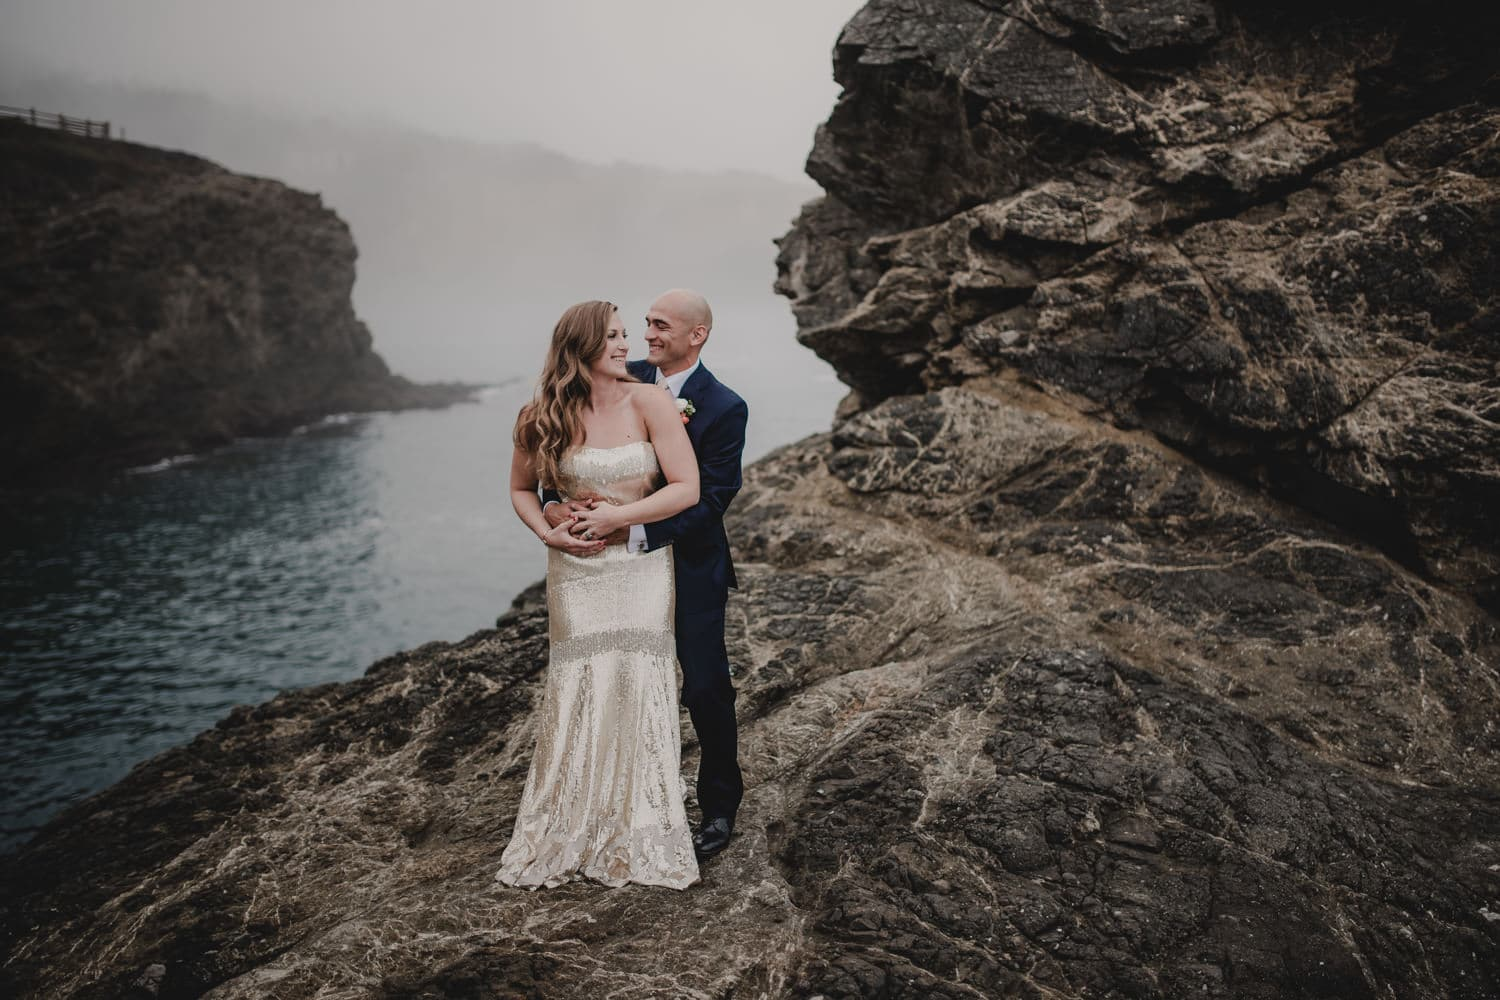 Destination wedding photography by the pacific ocean in Mendocino, California.